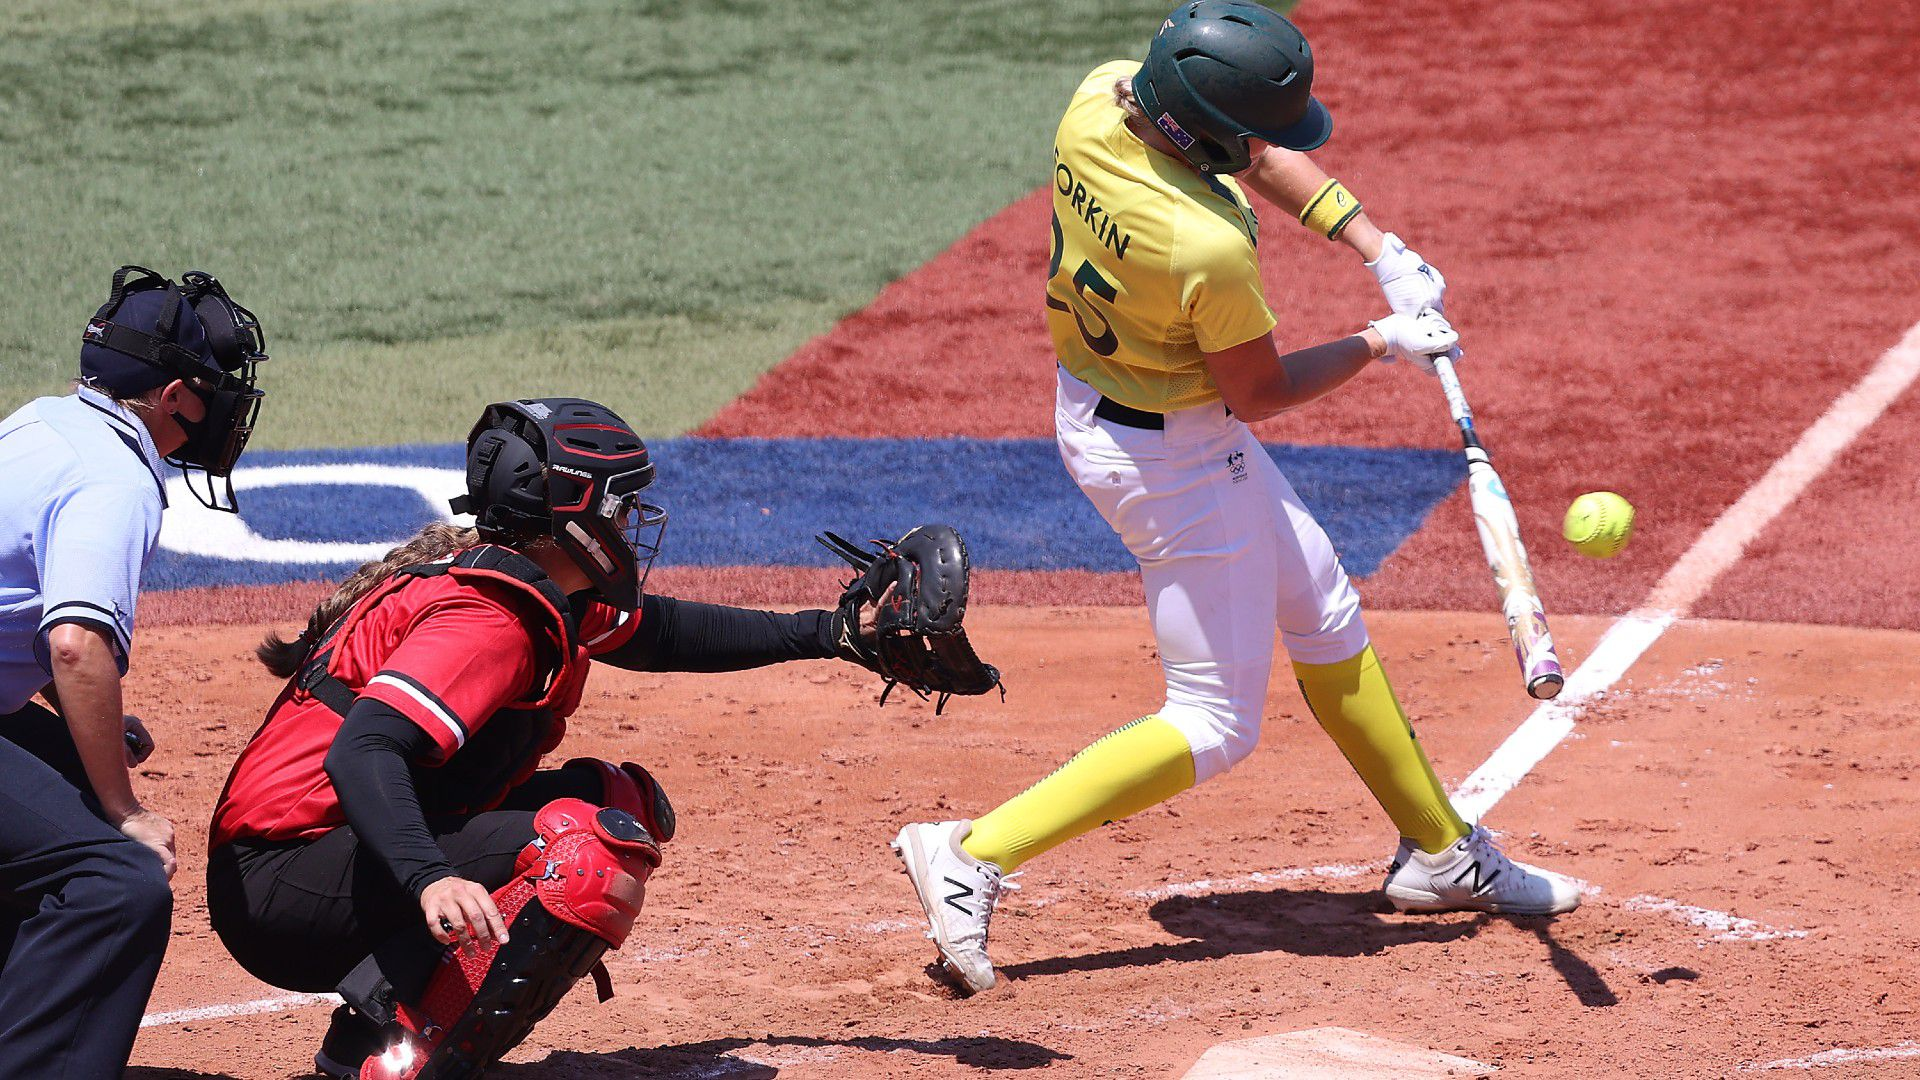 Australia's softball medal hopes take huge hit in thumping loss to Canada